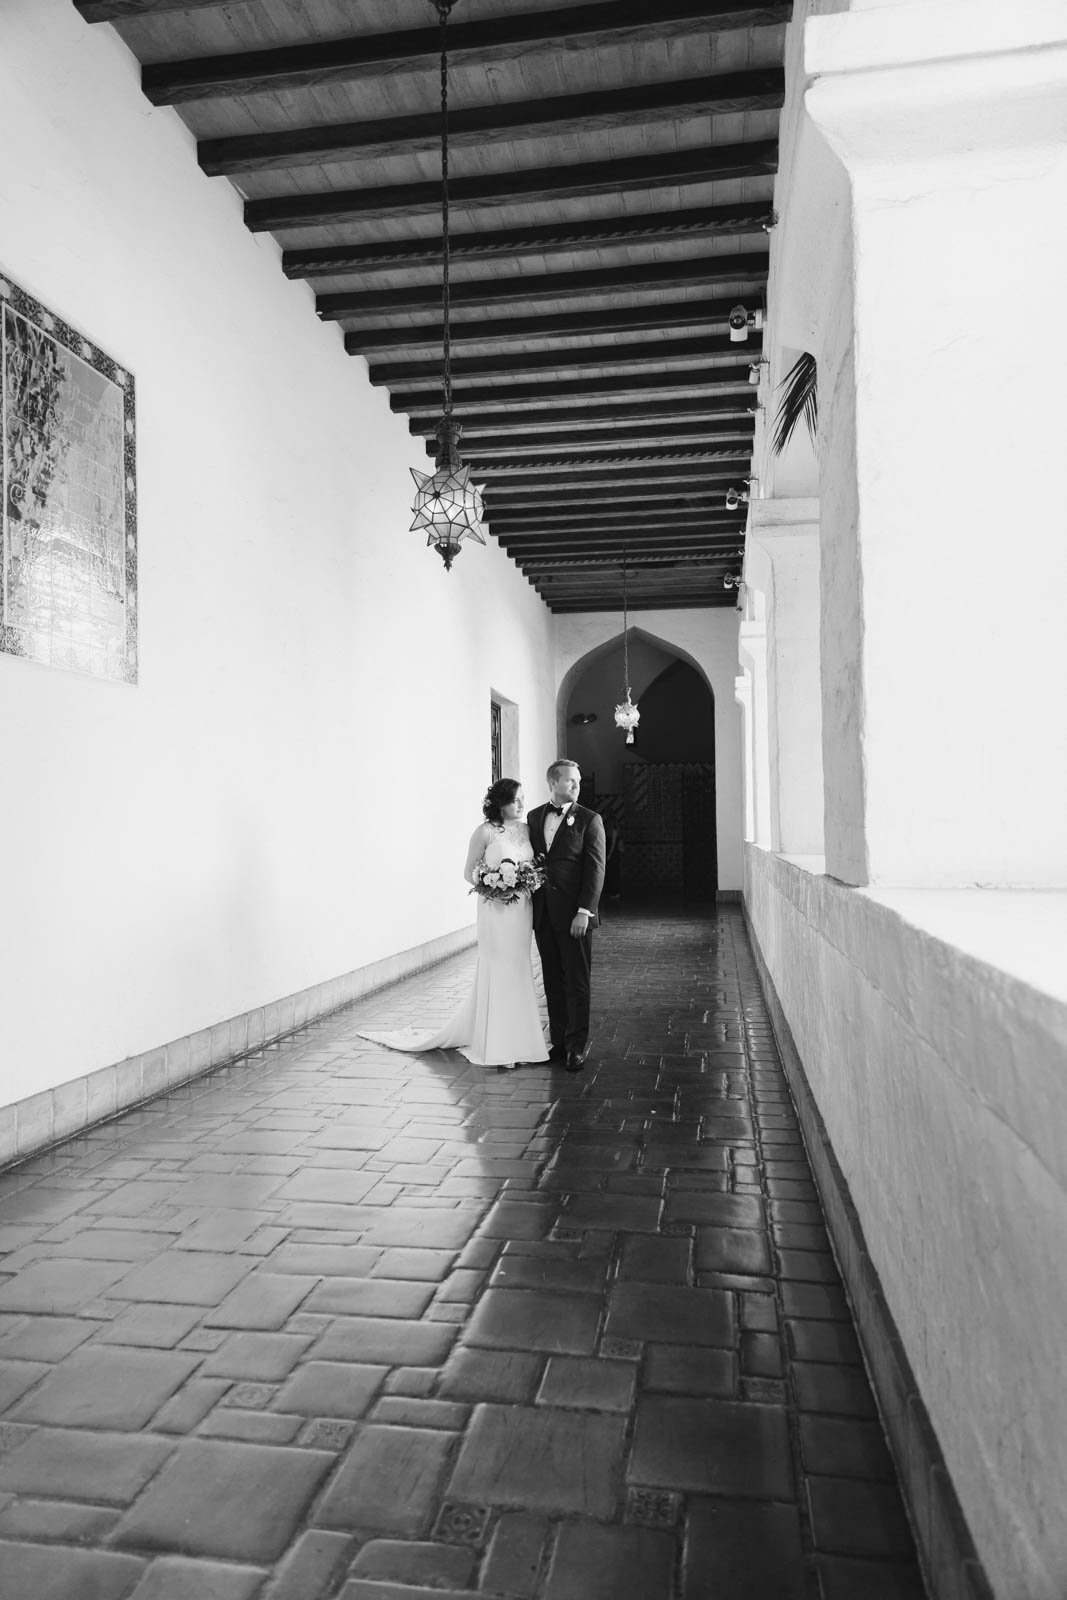 A bride and groom look to the side while standing in a hallway with stone floors and white painted walls